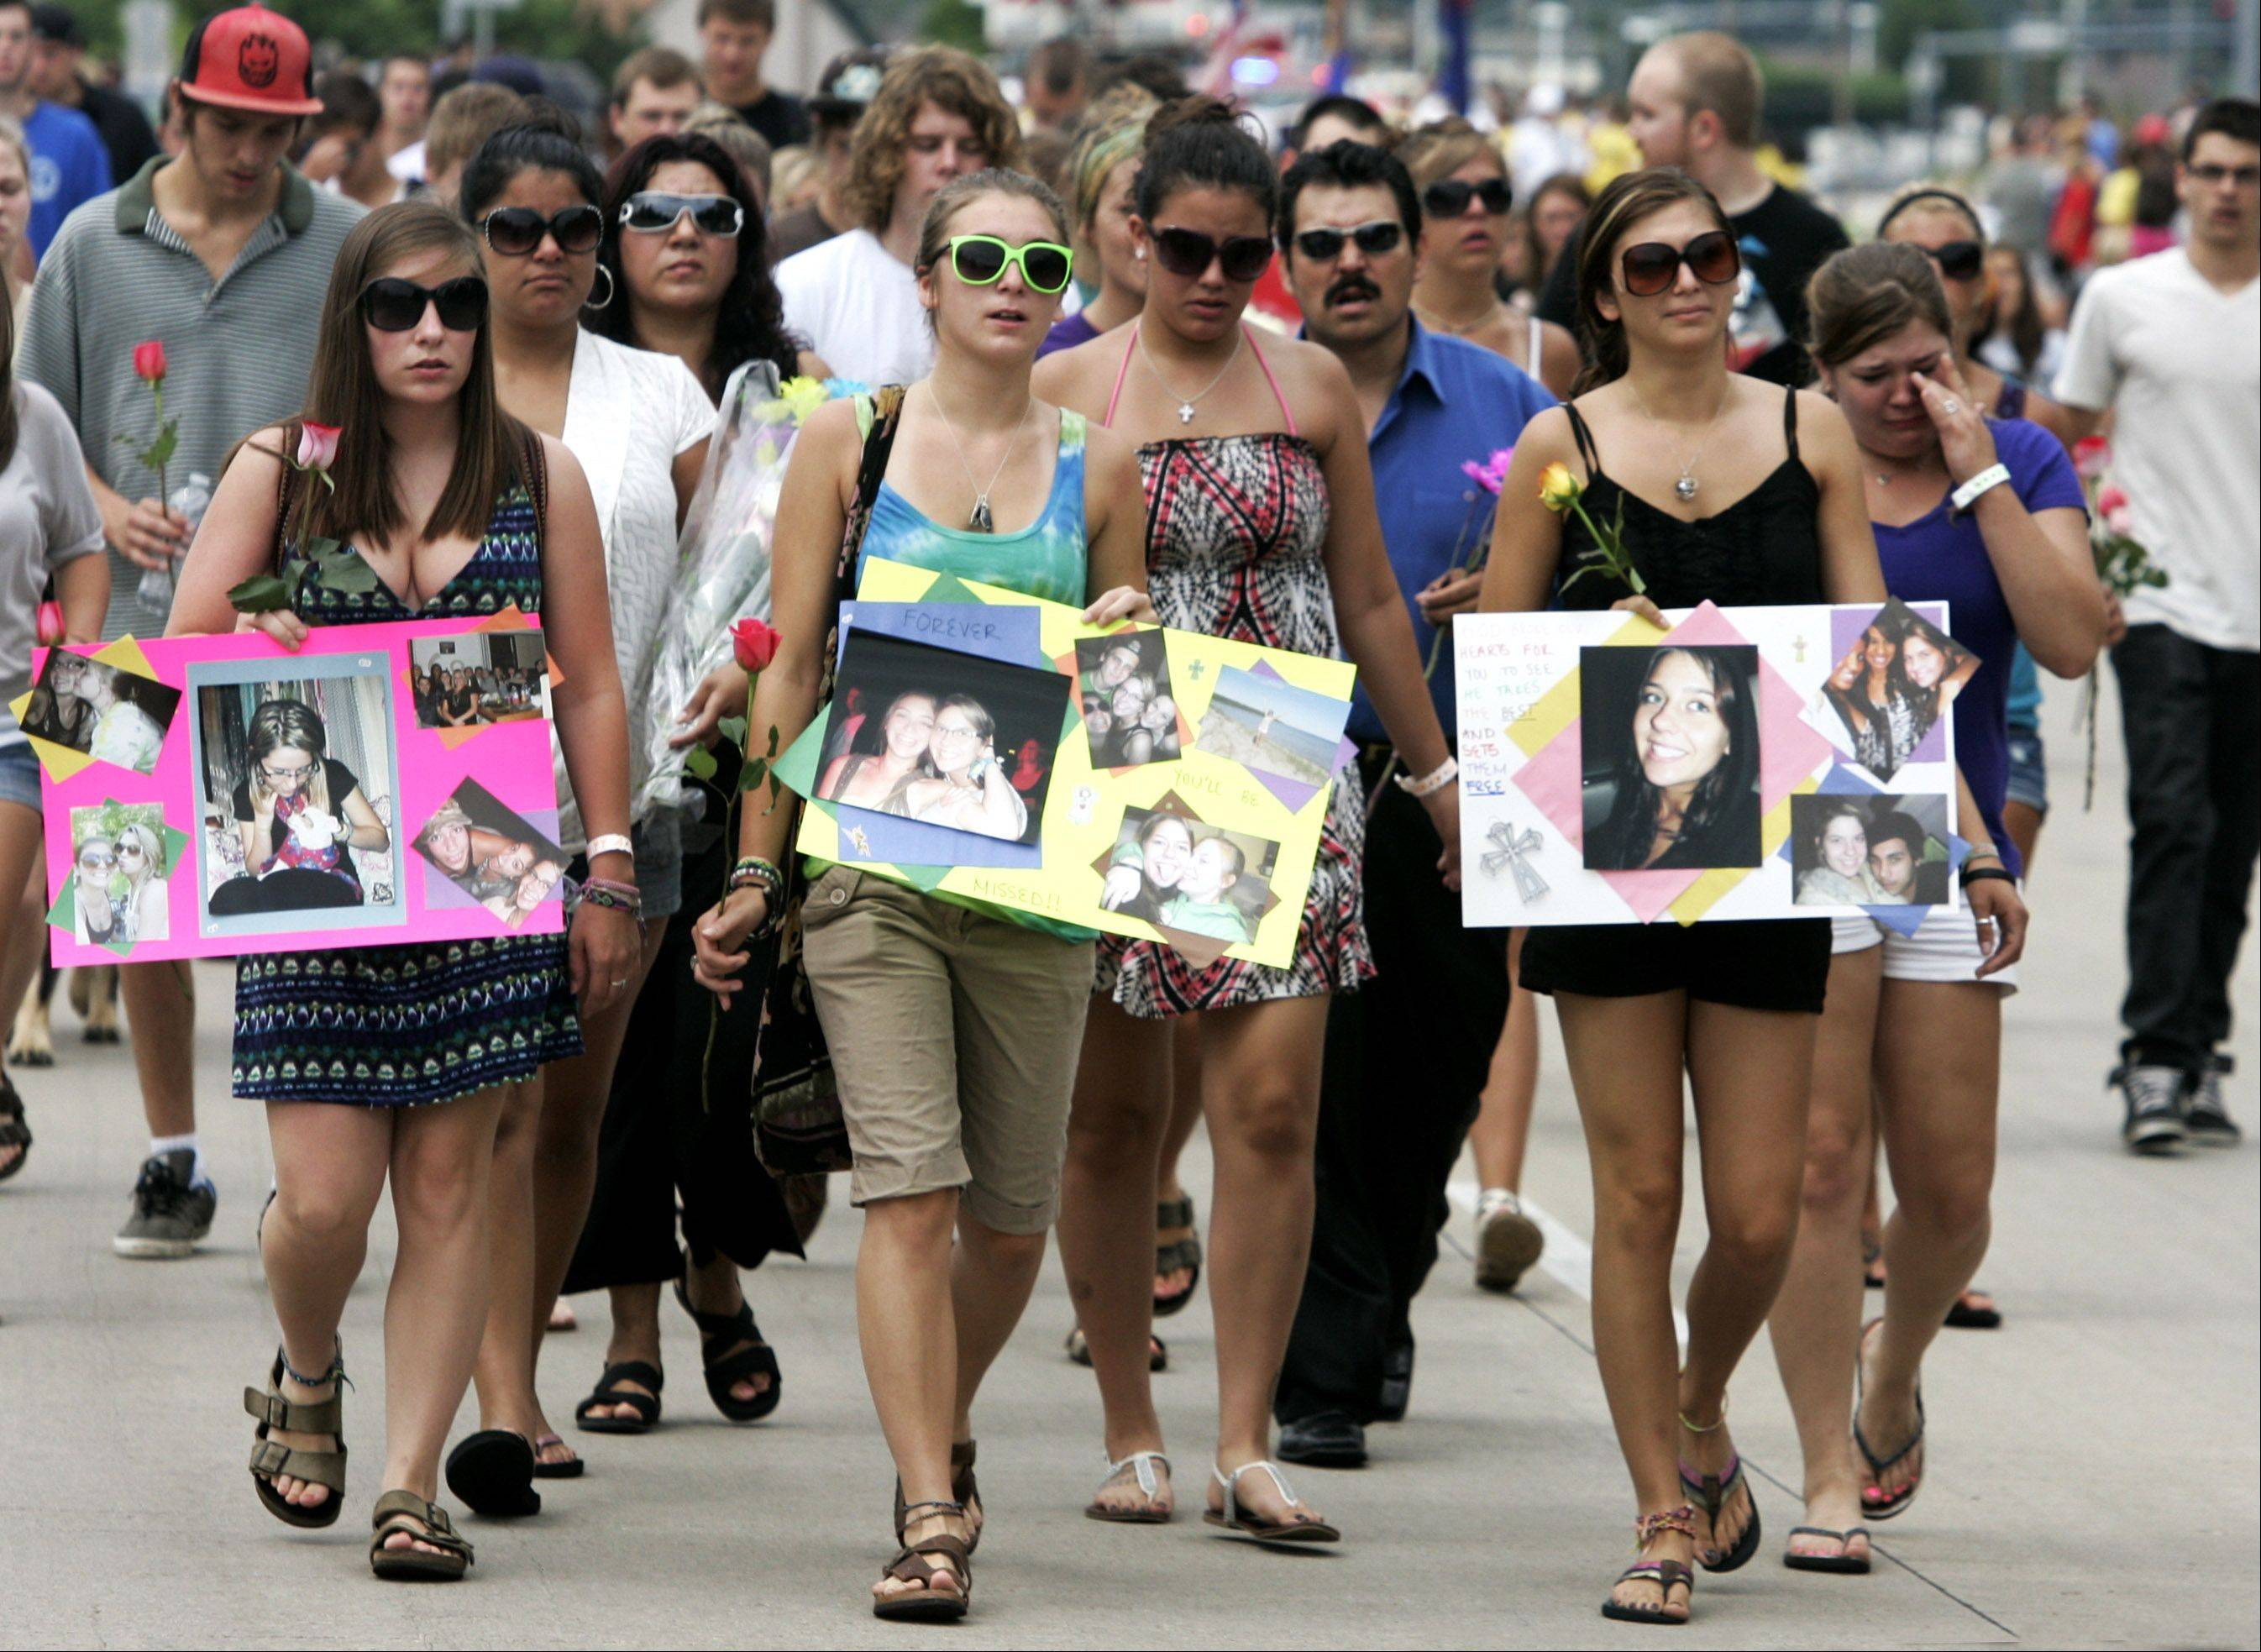 Friends and family of hit-and-run victim Gabriella Drozdz march in the Lake Zurich Alpine Festival parade in her memory Sunday. Drozdz, of Lake Zurich, was killed by someone driving an SUV Friday night as she and two other friends were walking along Church Street on their way to Alpine Fest.